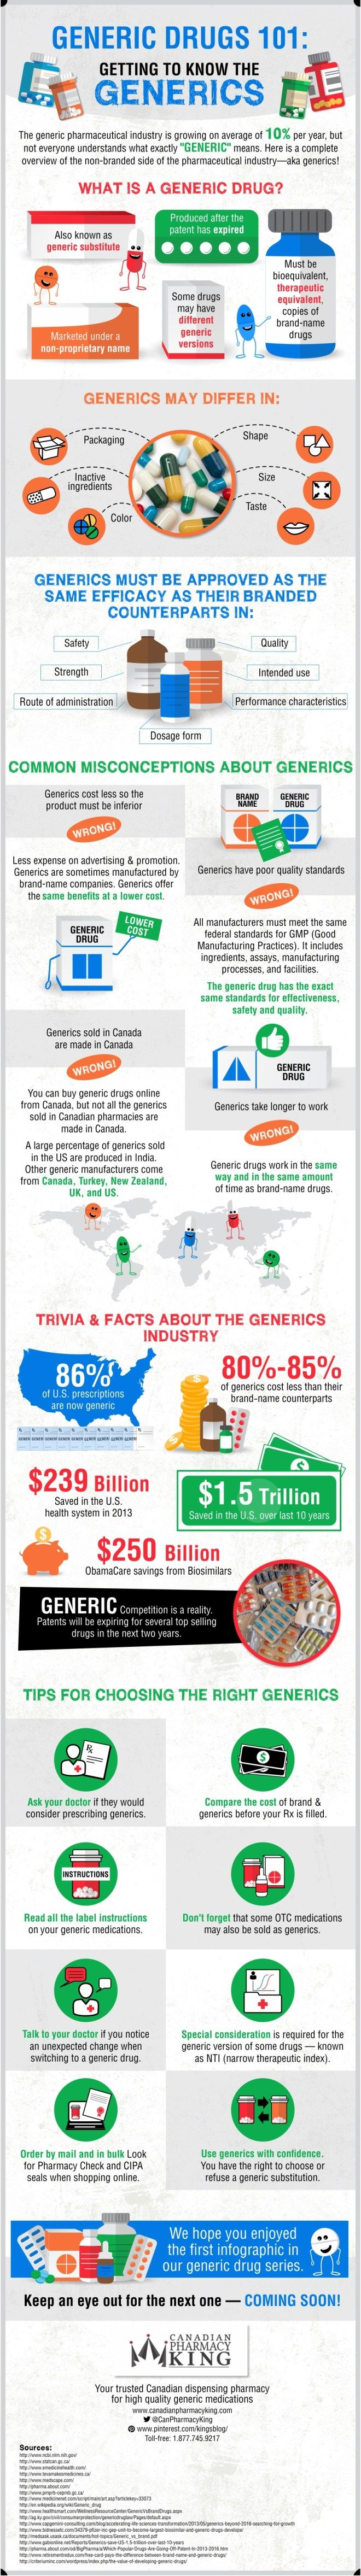 Lexapro generic alternatives.doc - Generic Drugs 101 Getting To Know The Generics By Canadian Pharmacy King